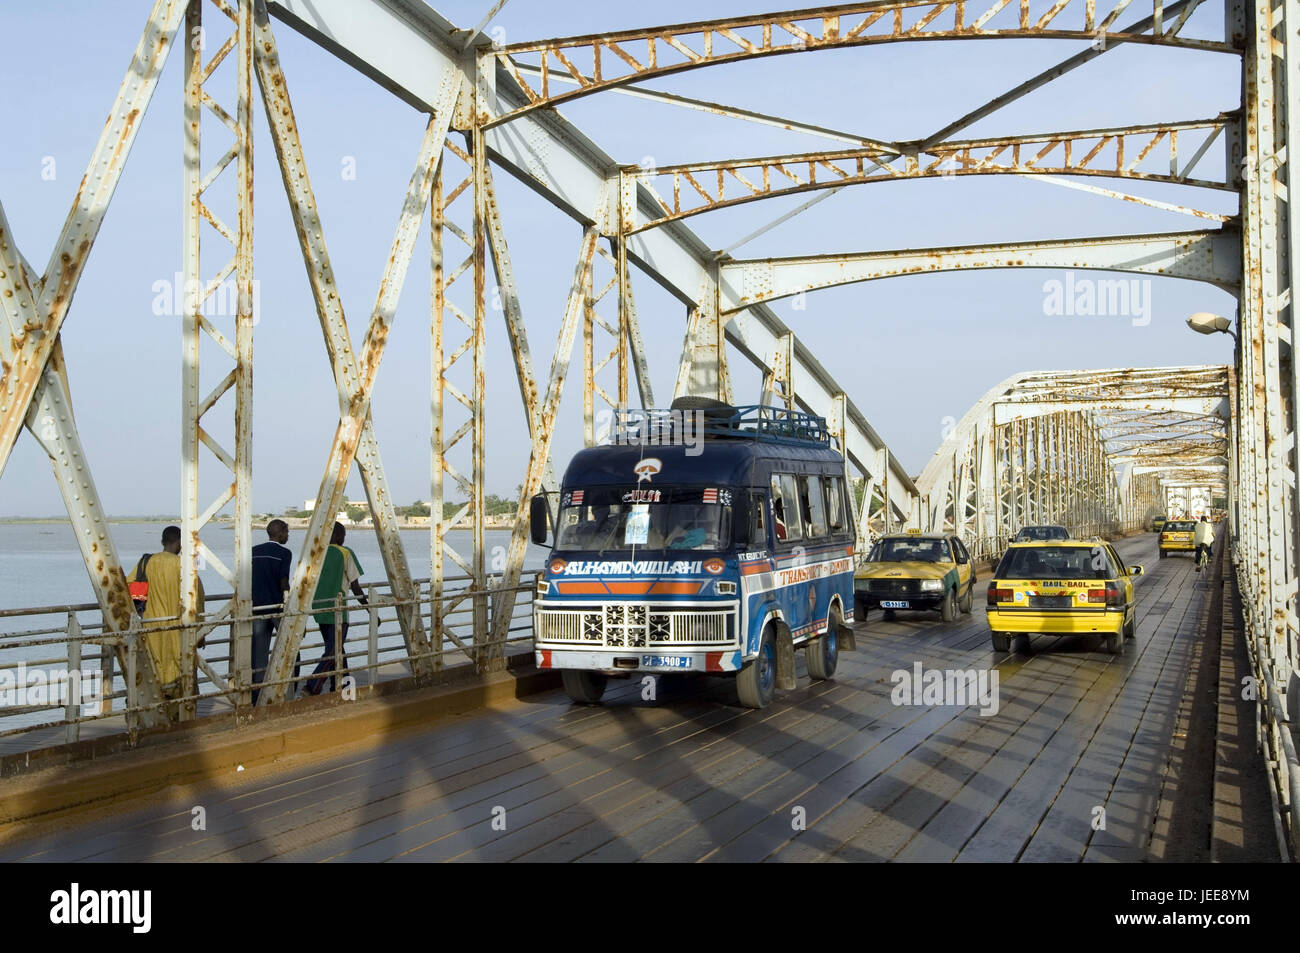 Traffic, taxis, bus, pedestrian, Pont Faidherbe, river, Saint-Louis, Senegal, - Stock Image